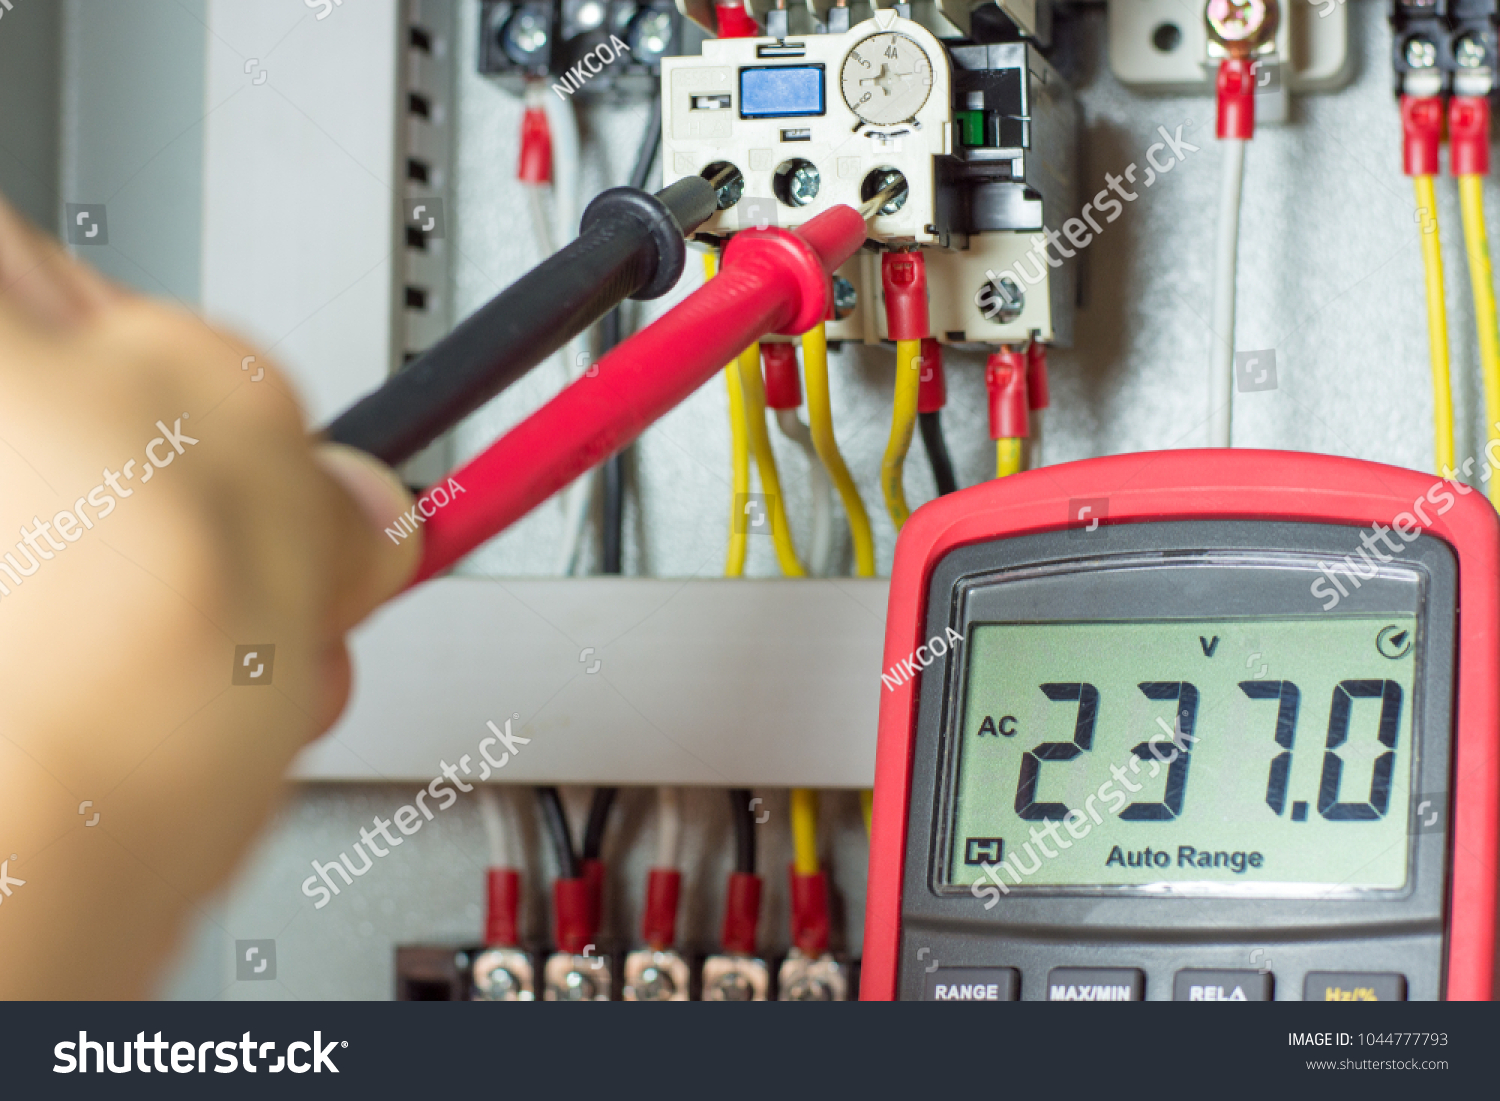 Electrical Terminal Box Control Panel Manetic Stock Photo Edit Now Home Wiring Distribution With Contactor And Overload Relaymeasuring Voltage On